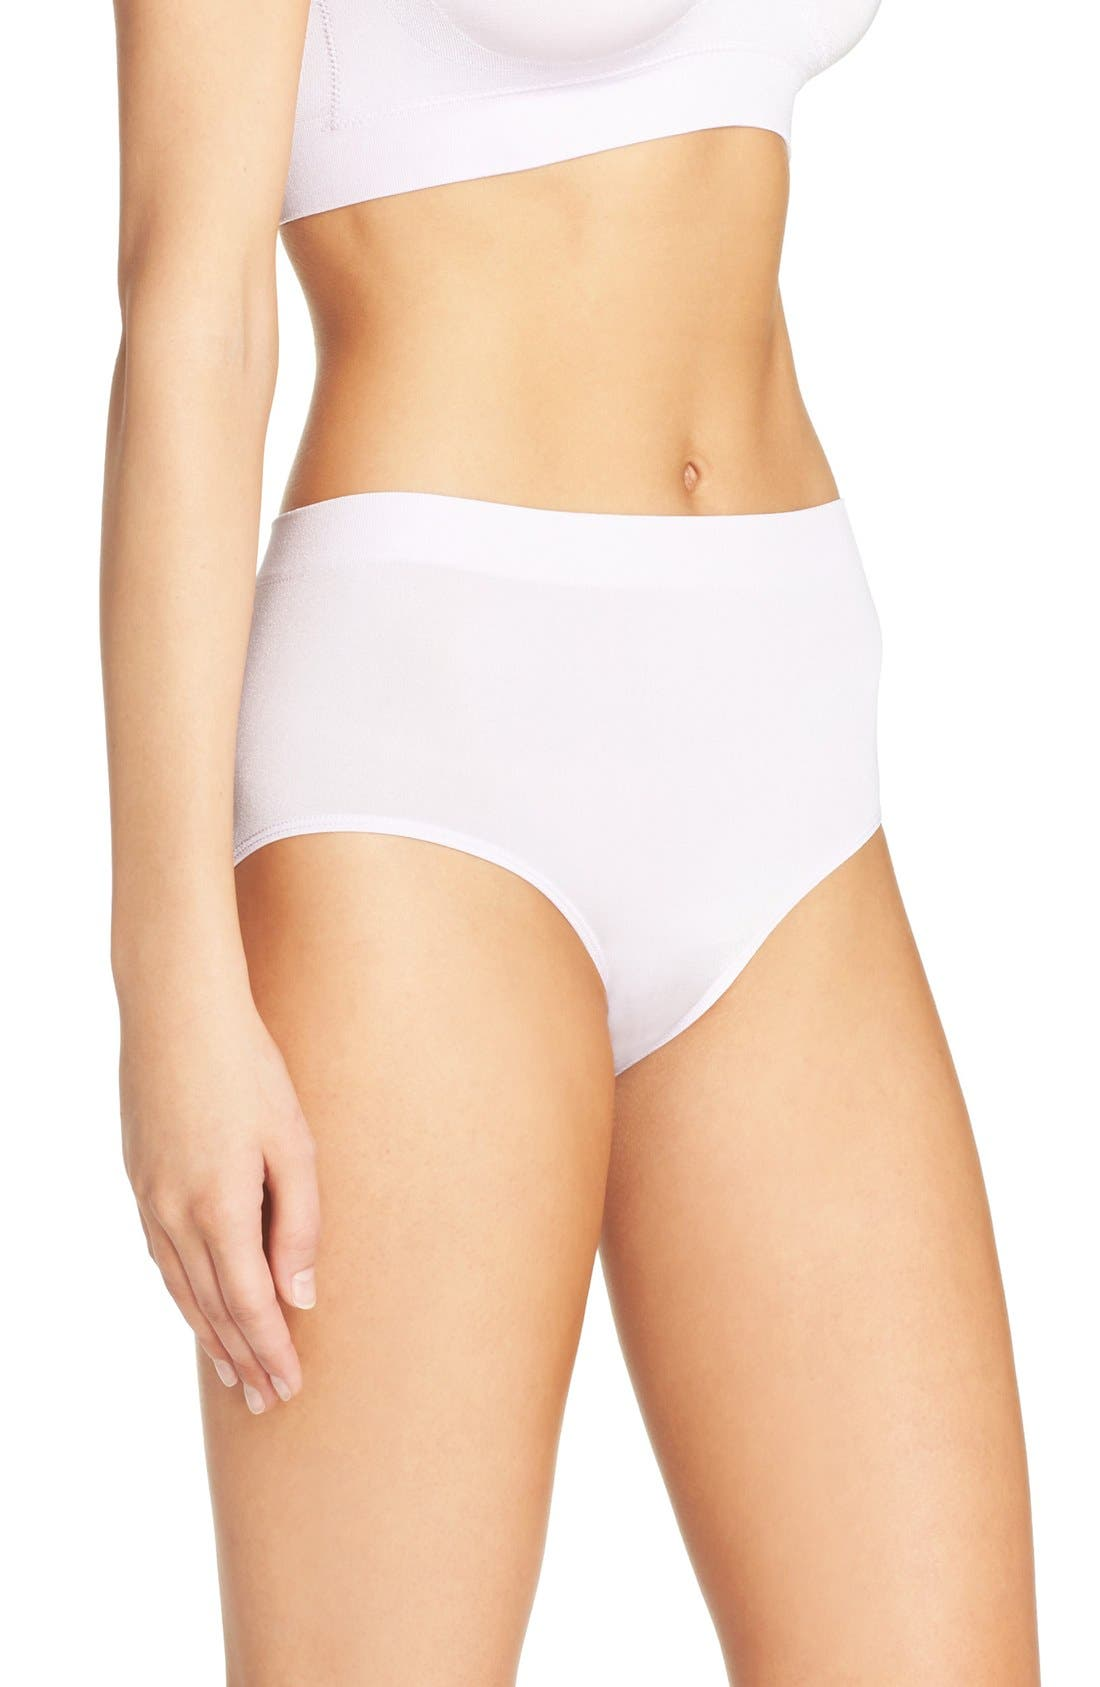 B Smooth Briefs,                             Alternate thumbnail 258, color,